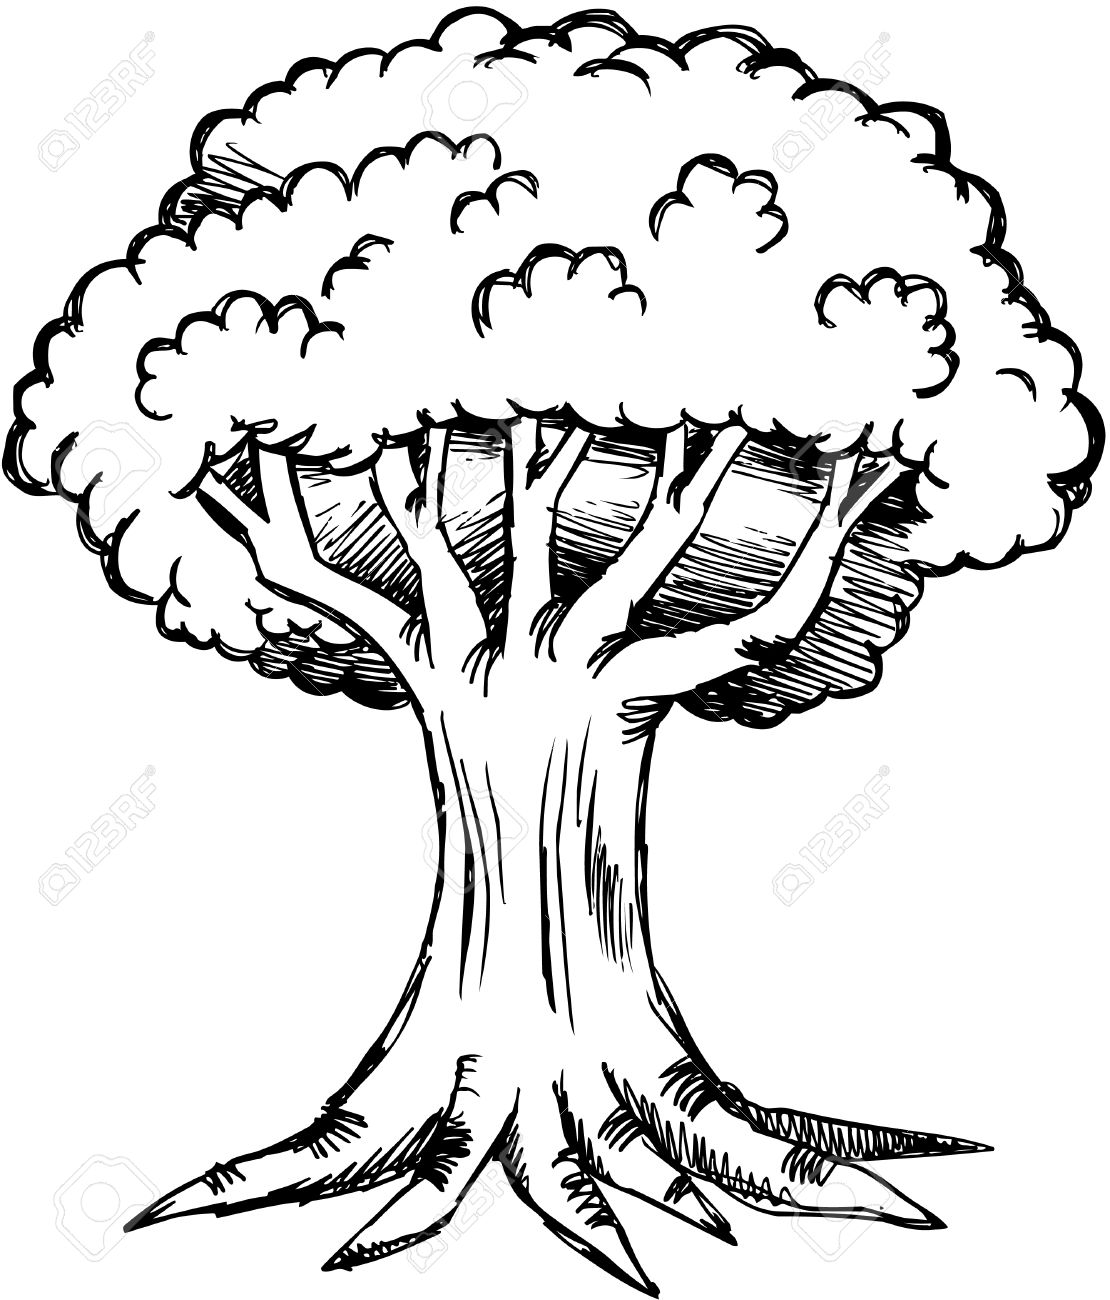 1110x1300 Tree Cartoon Black And White Collection